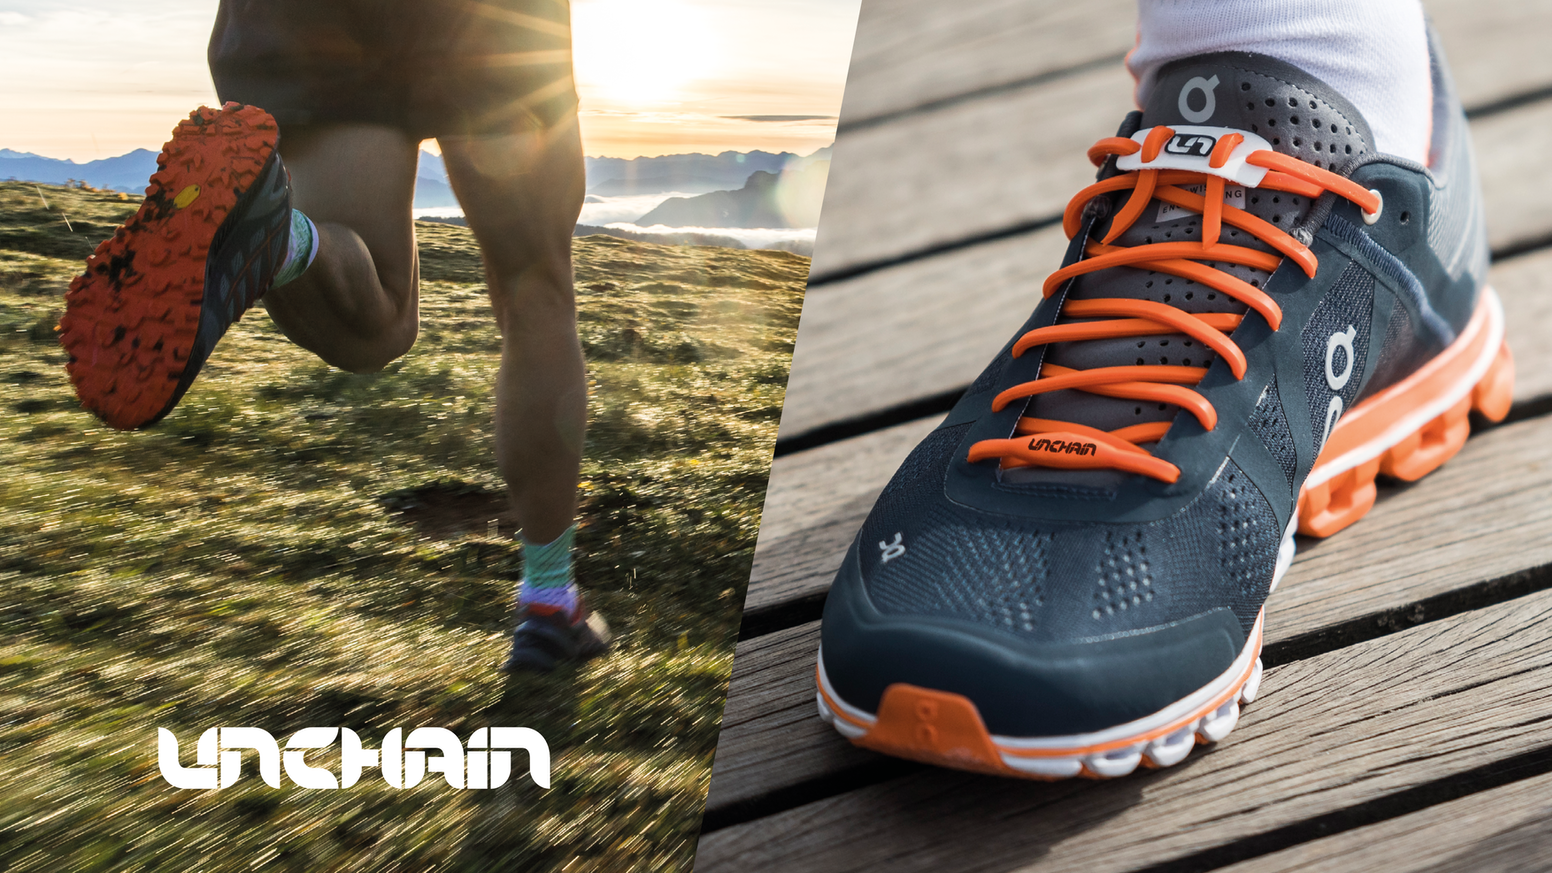 The 1st alternative lacing system, knot-free & customizable, molding to your foot with no compression improving comfort and performance